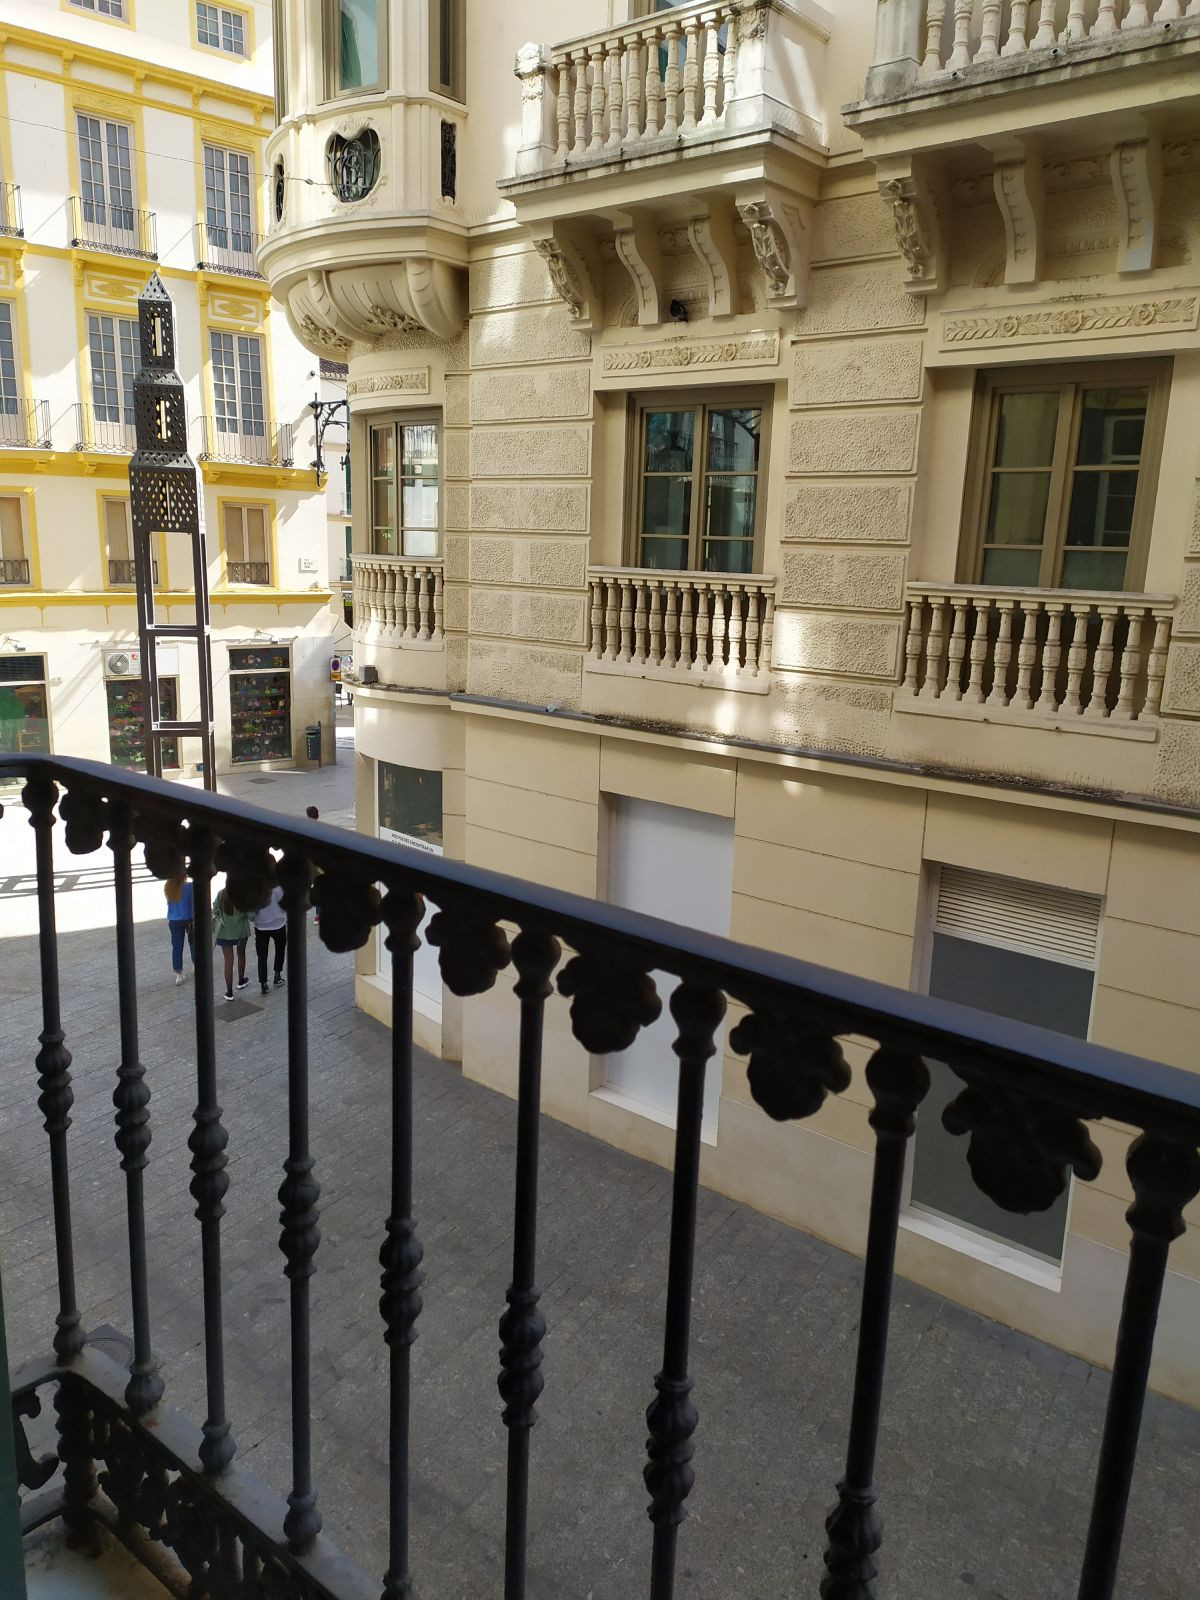 MALAGA CENTRO HISTORICO - Stunning studio apartment in the heart of Malaga with private balconies an, Spain